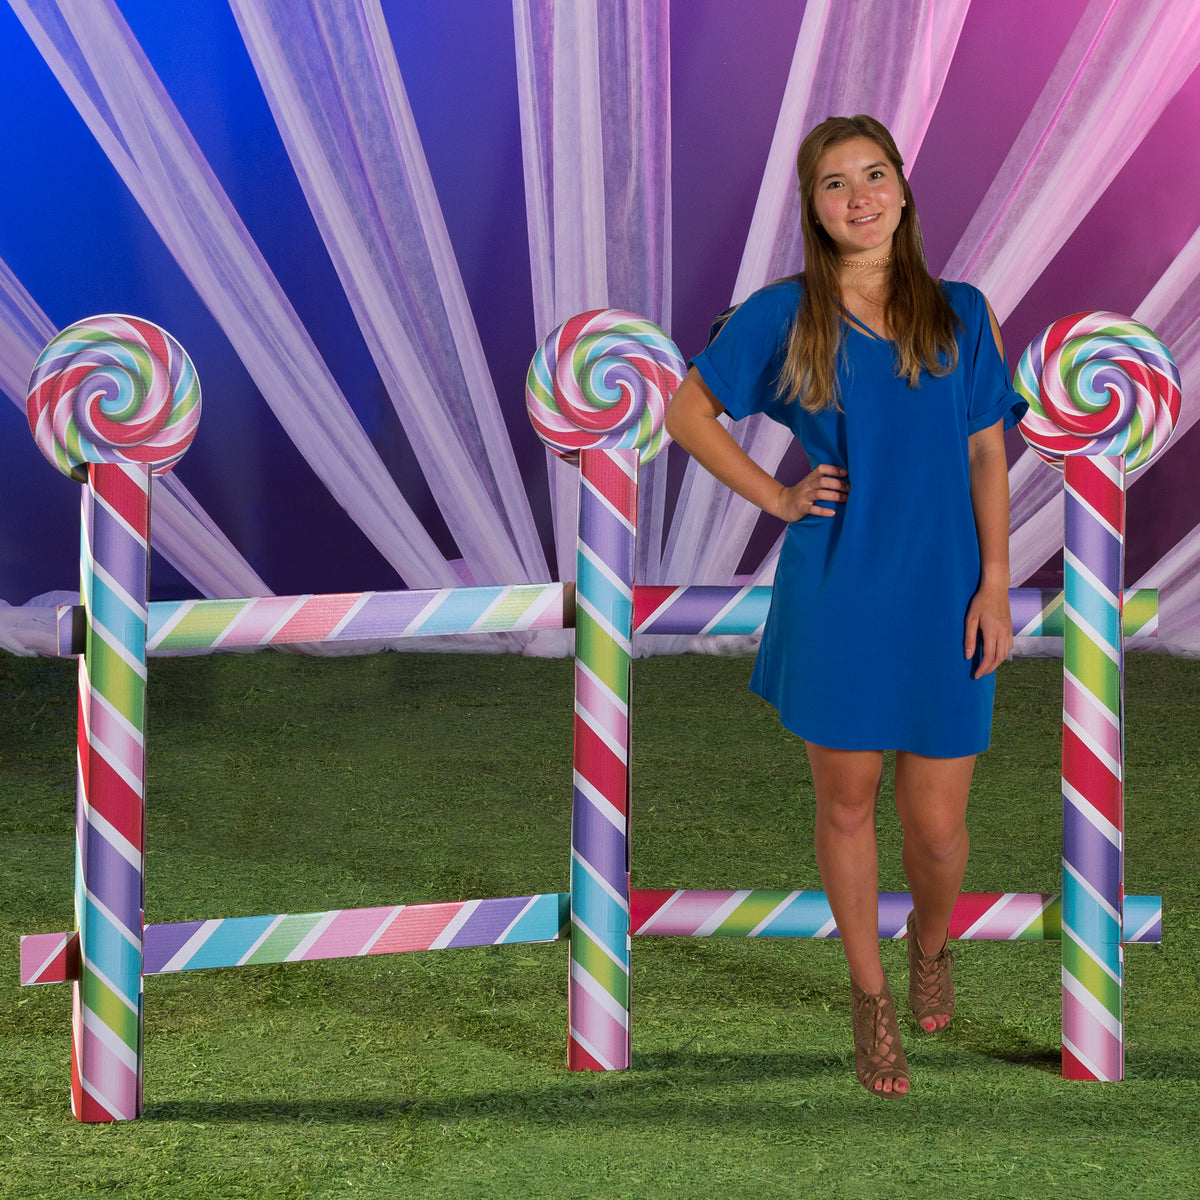 4 ft. 8 in. Sugar Rush Candy Fence